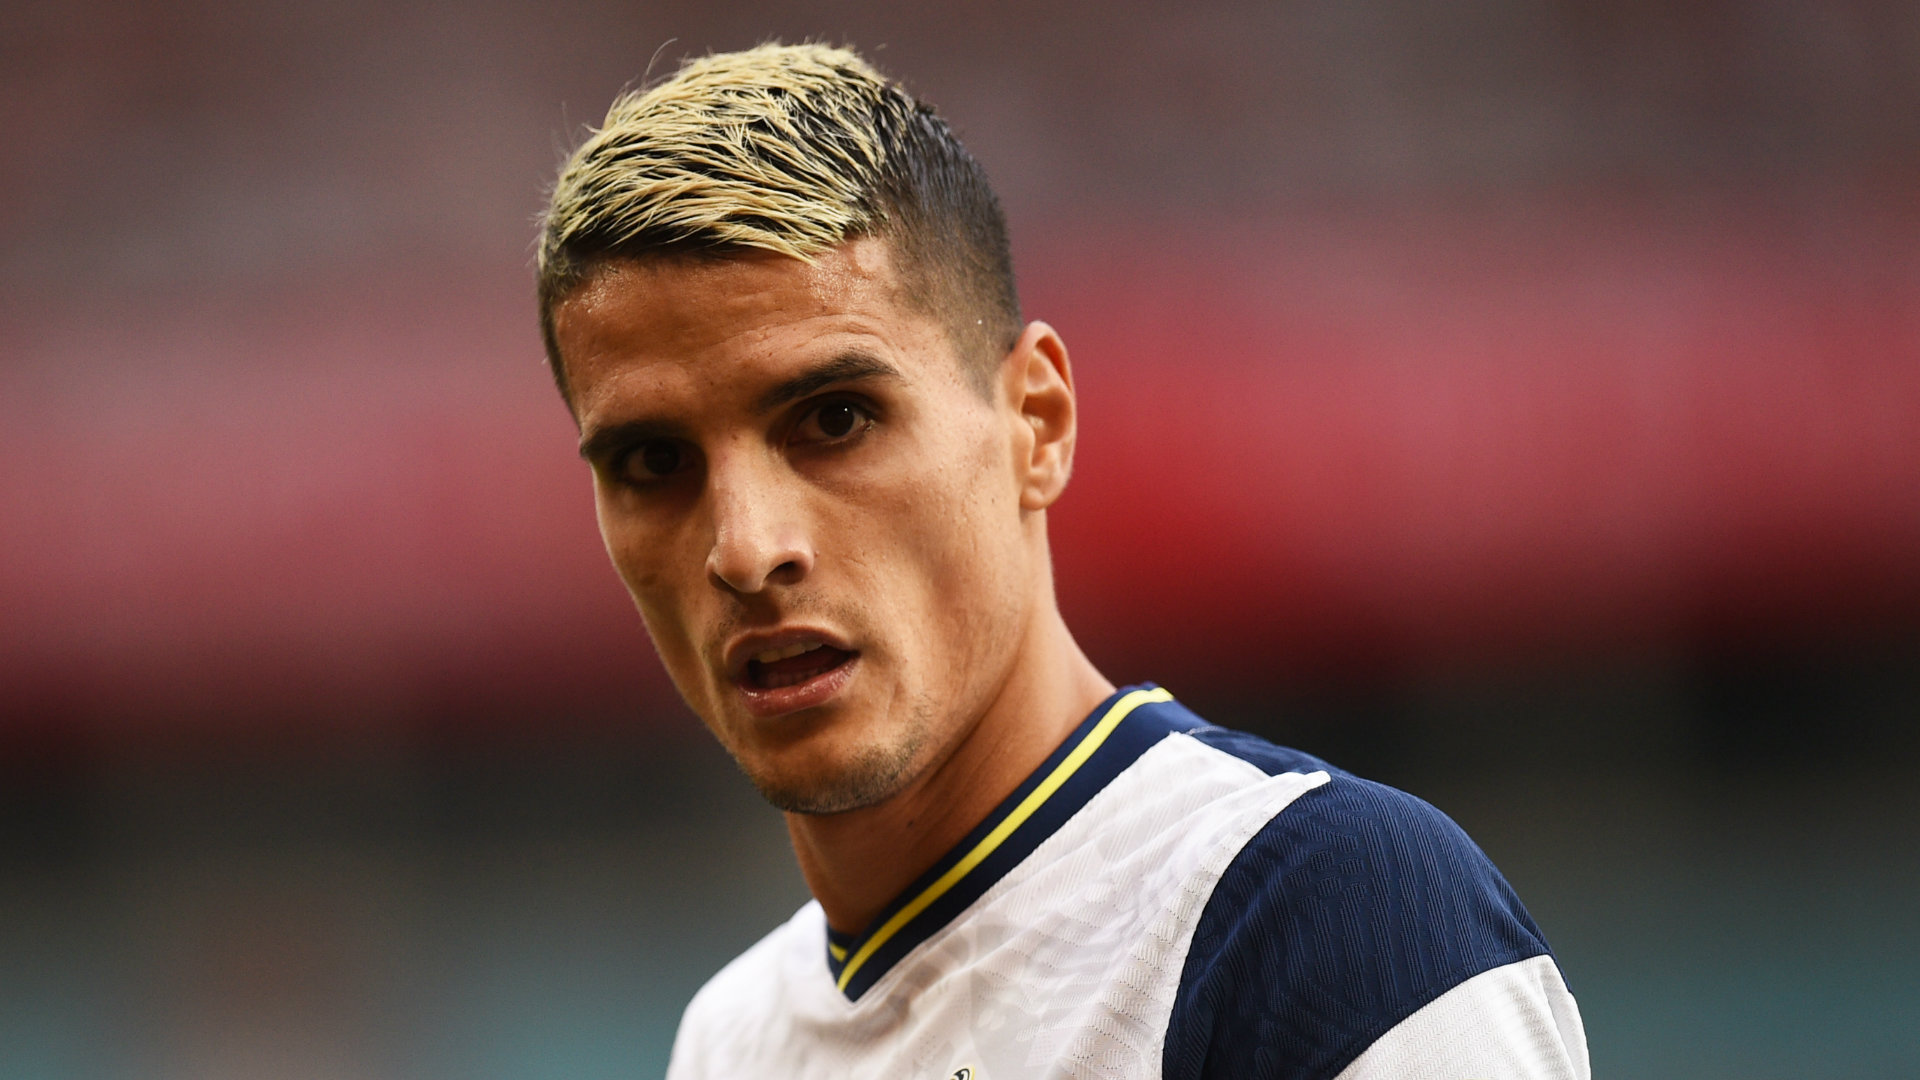 'I feel ashamed' – Spurs star Lamela apologises for breaking coronavirus rules at Christmas party